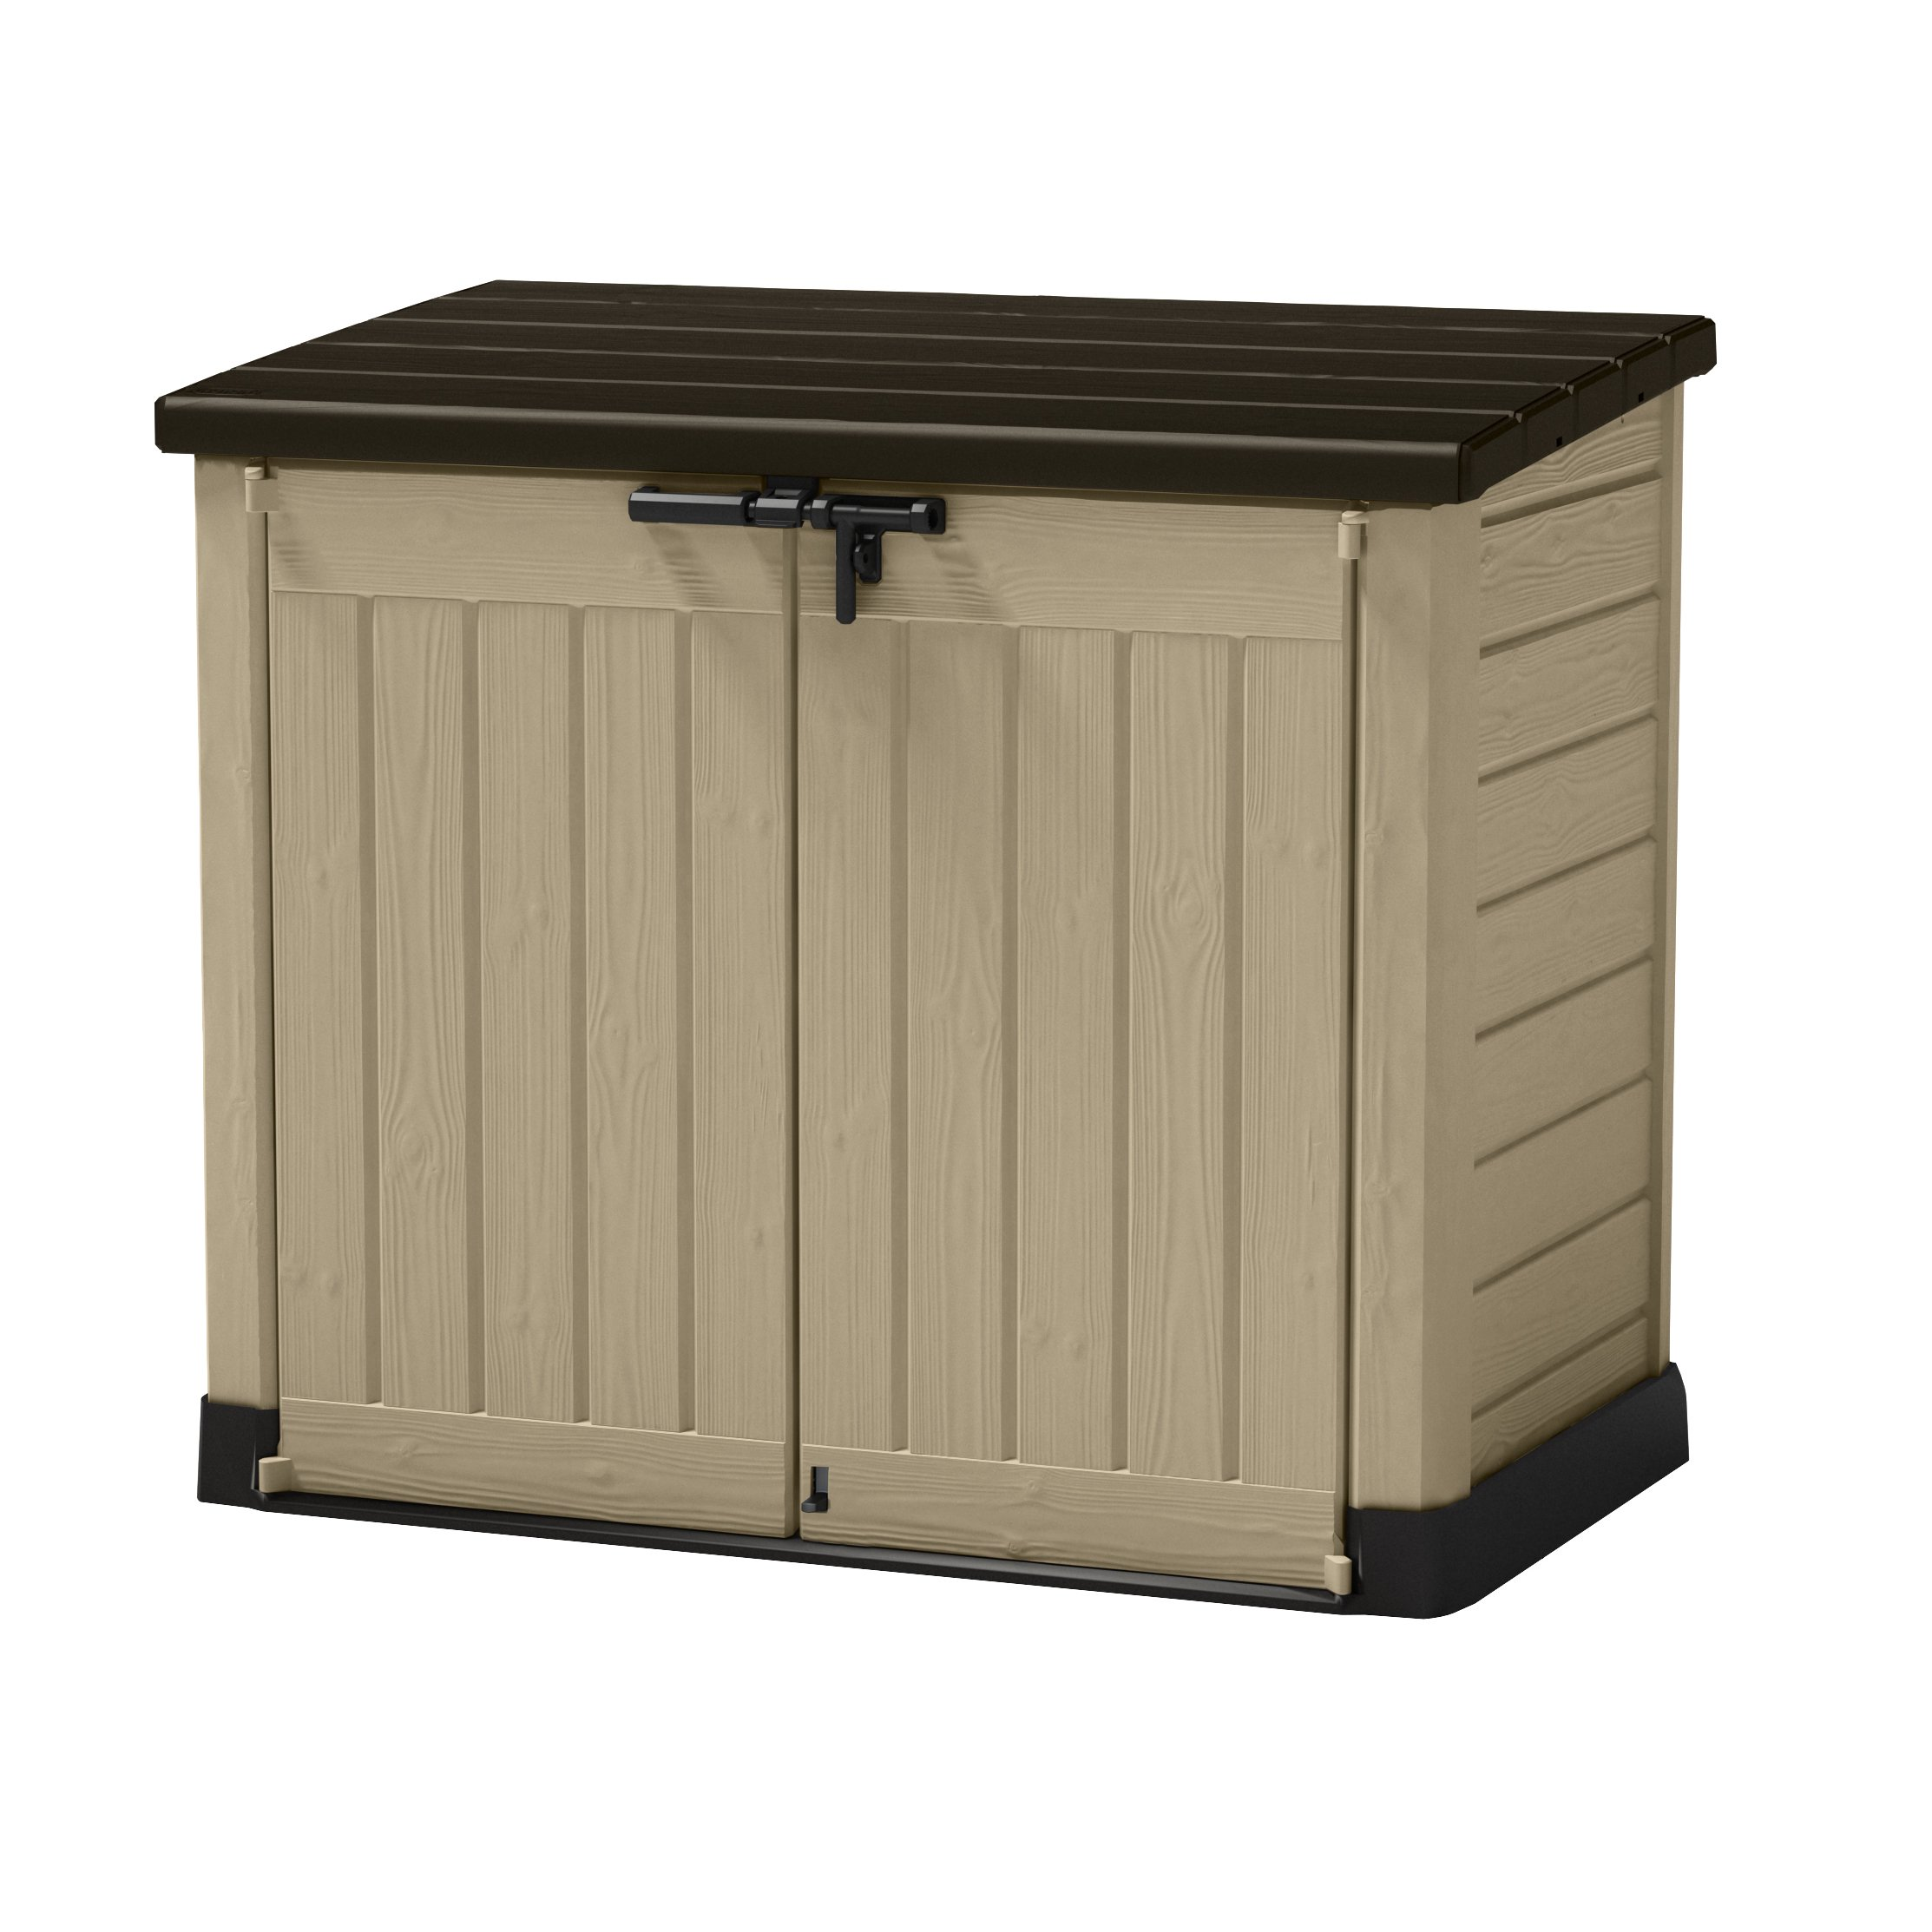 Shop Keter Store-It-Out Max Beige, Brown Resin Outdoor Horizontal Garden  Storage Shed - Free Shipping Today - Overstock - 12364283